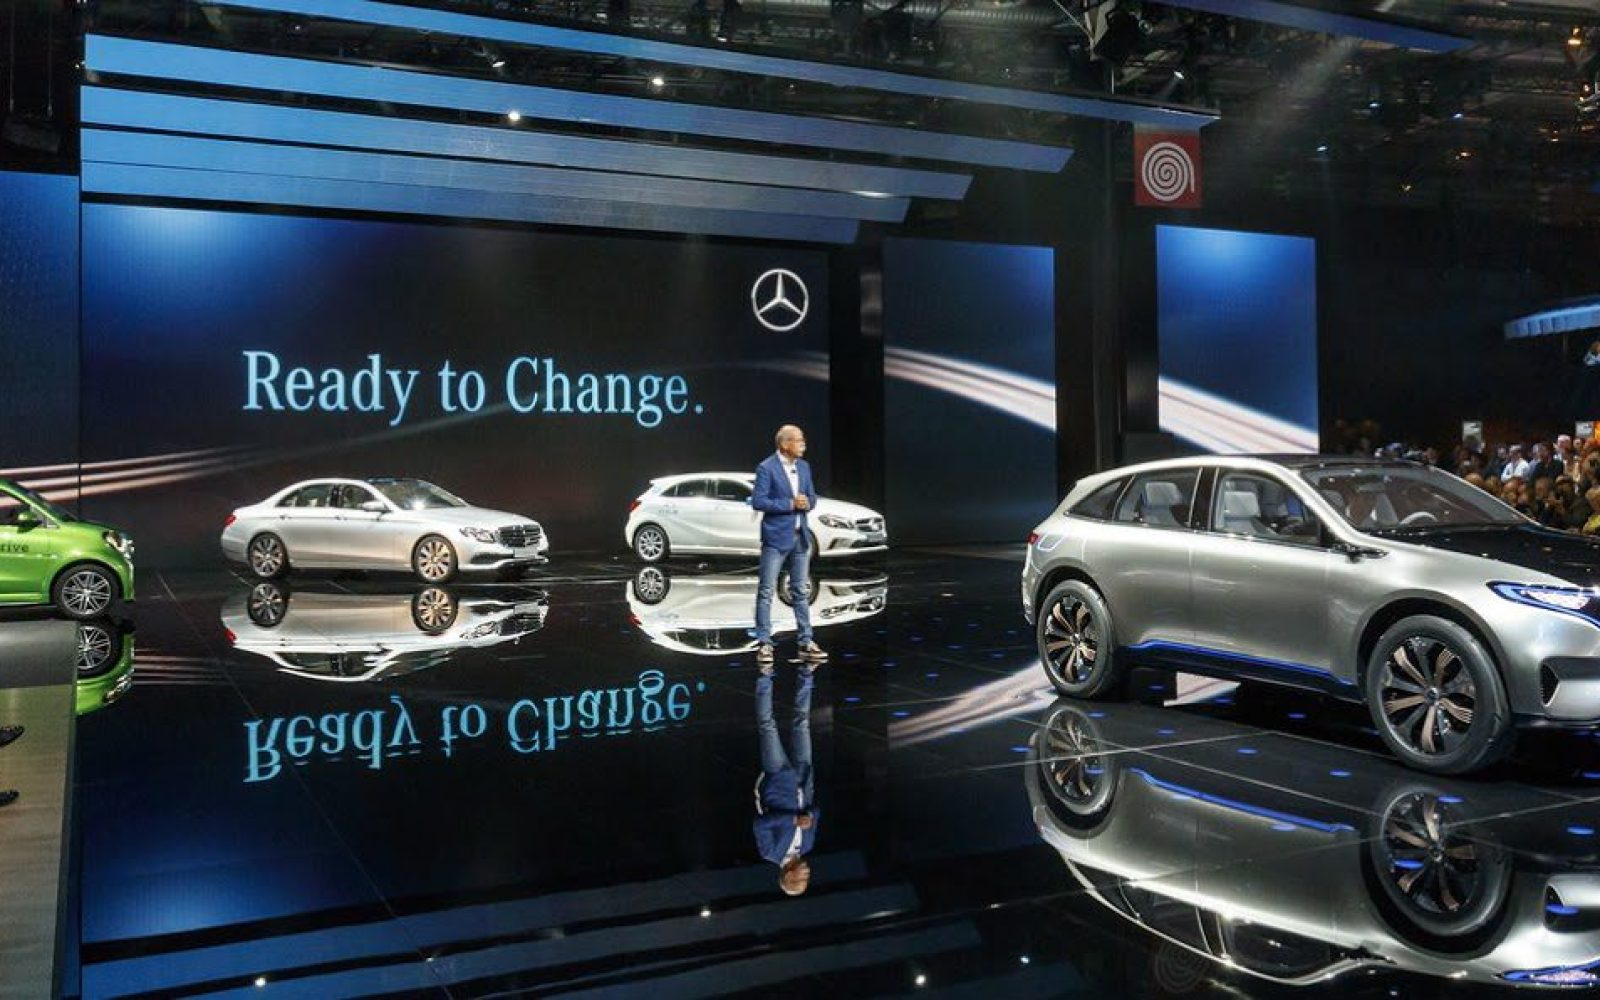 'Tesla has freed the electric car from its granola image', says Daimler CEO